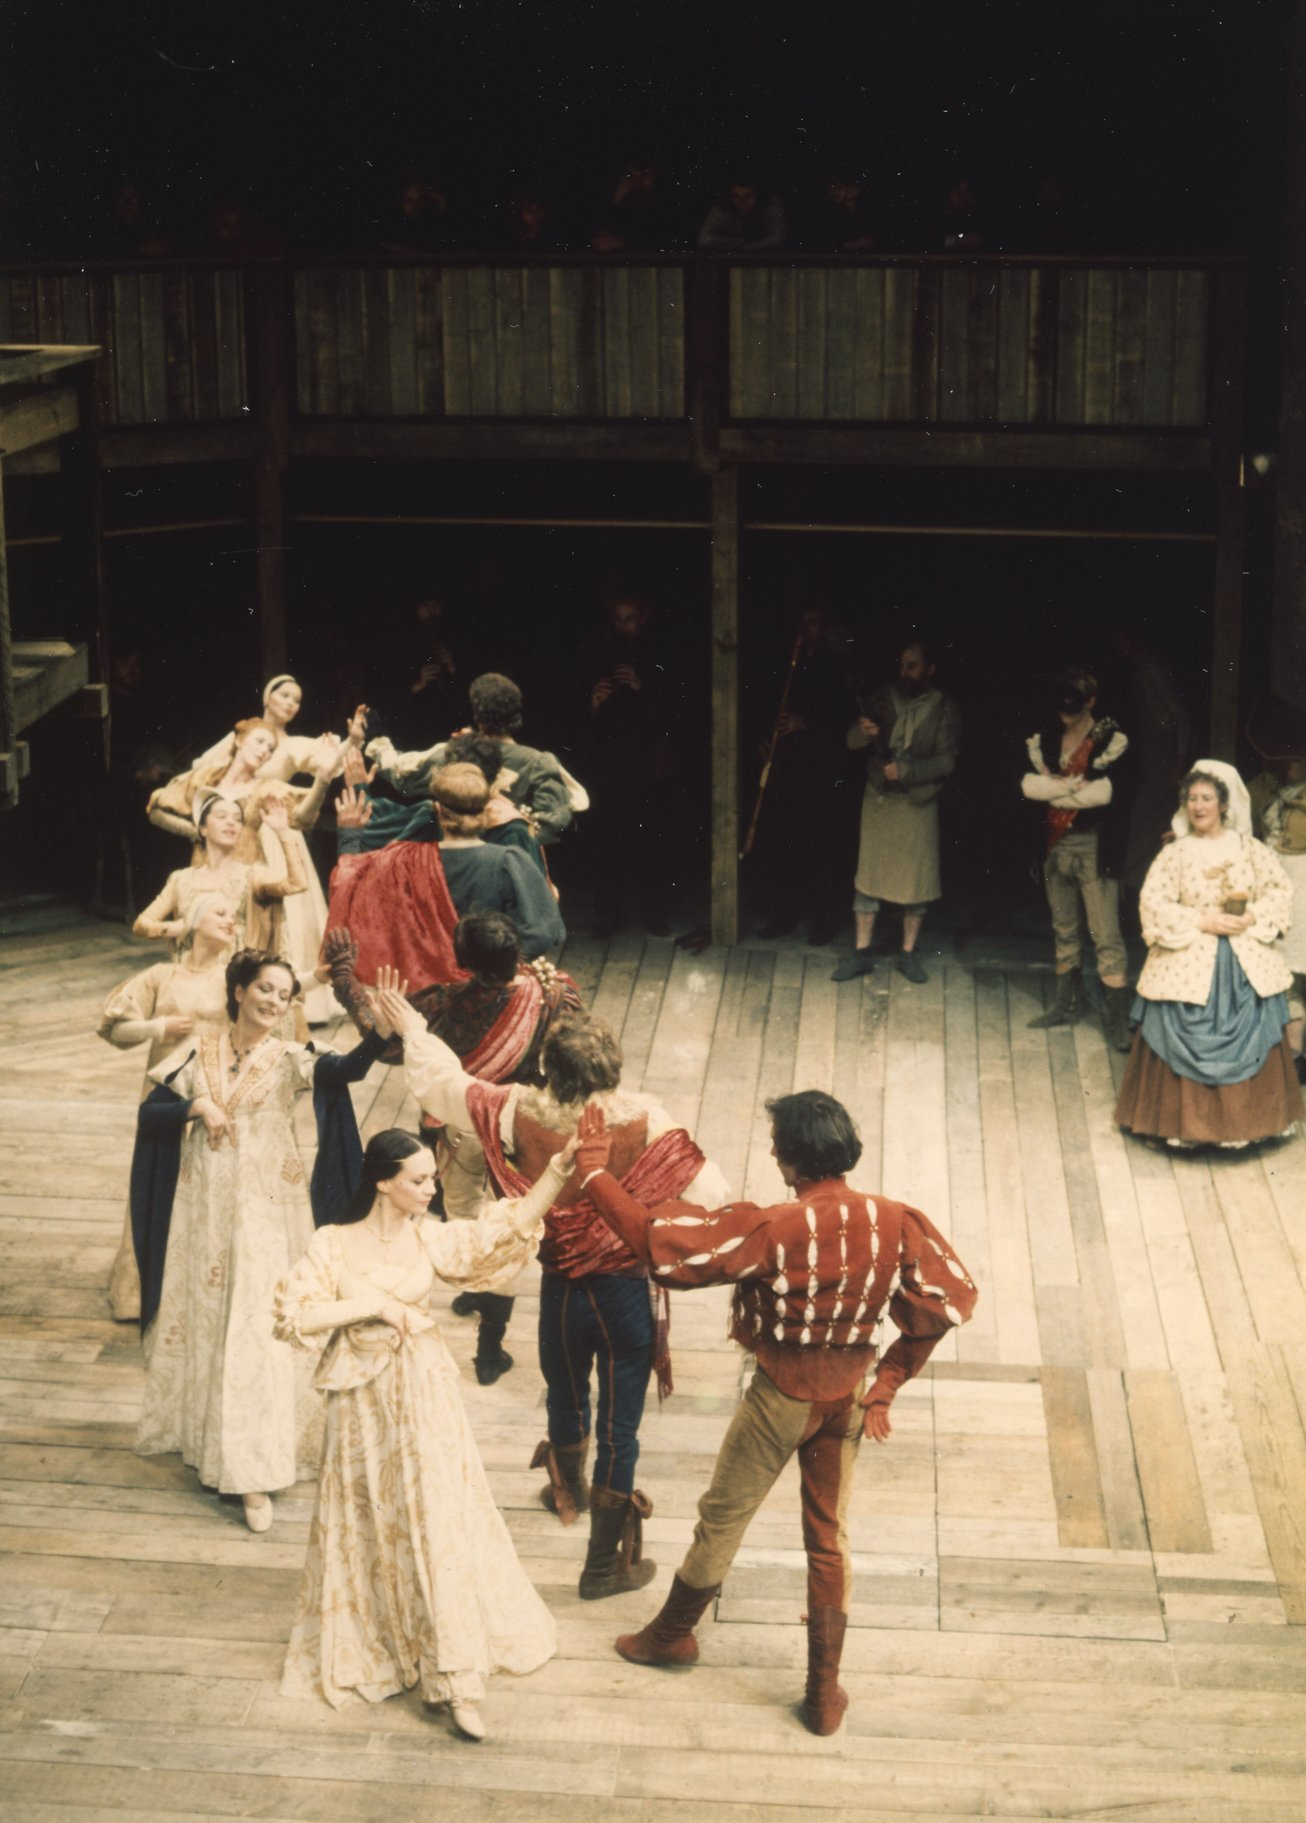 The set of the 2006 production of Romeo and Juliet at the Capulet ball.